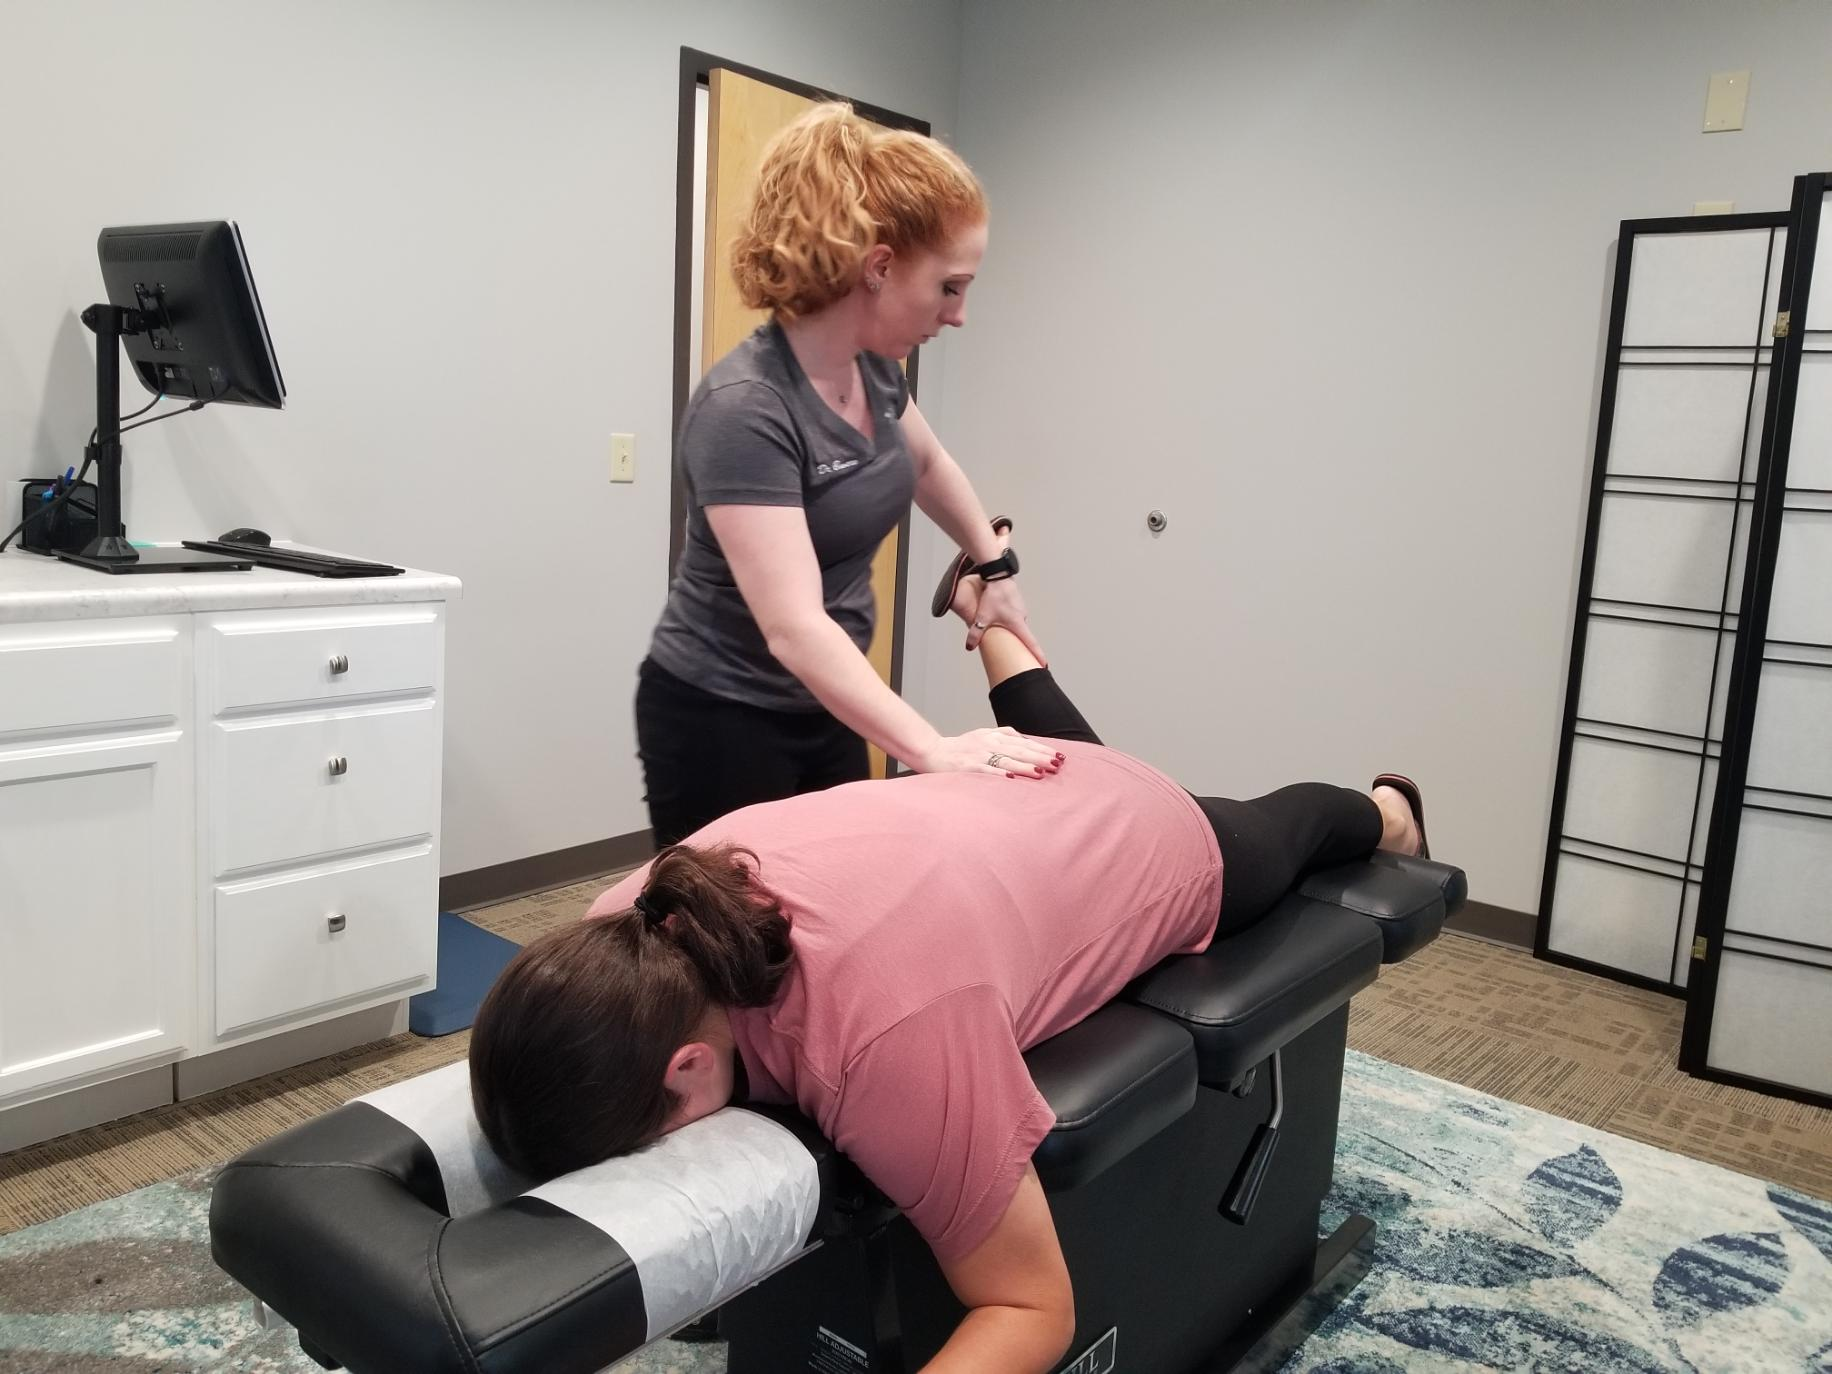 Dr. Bowers-Chiropractic